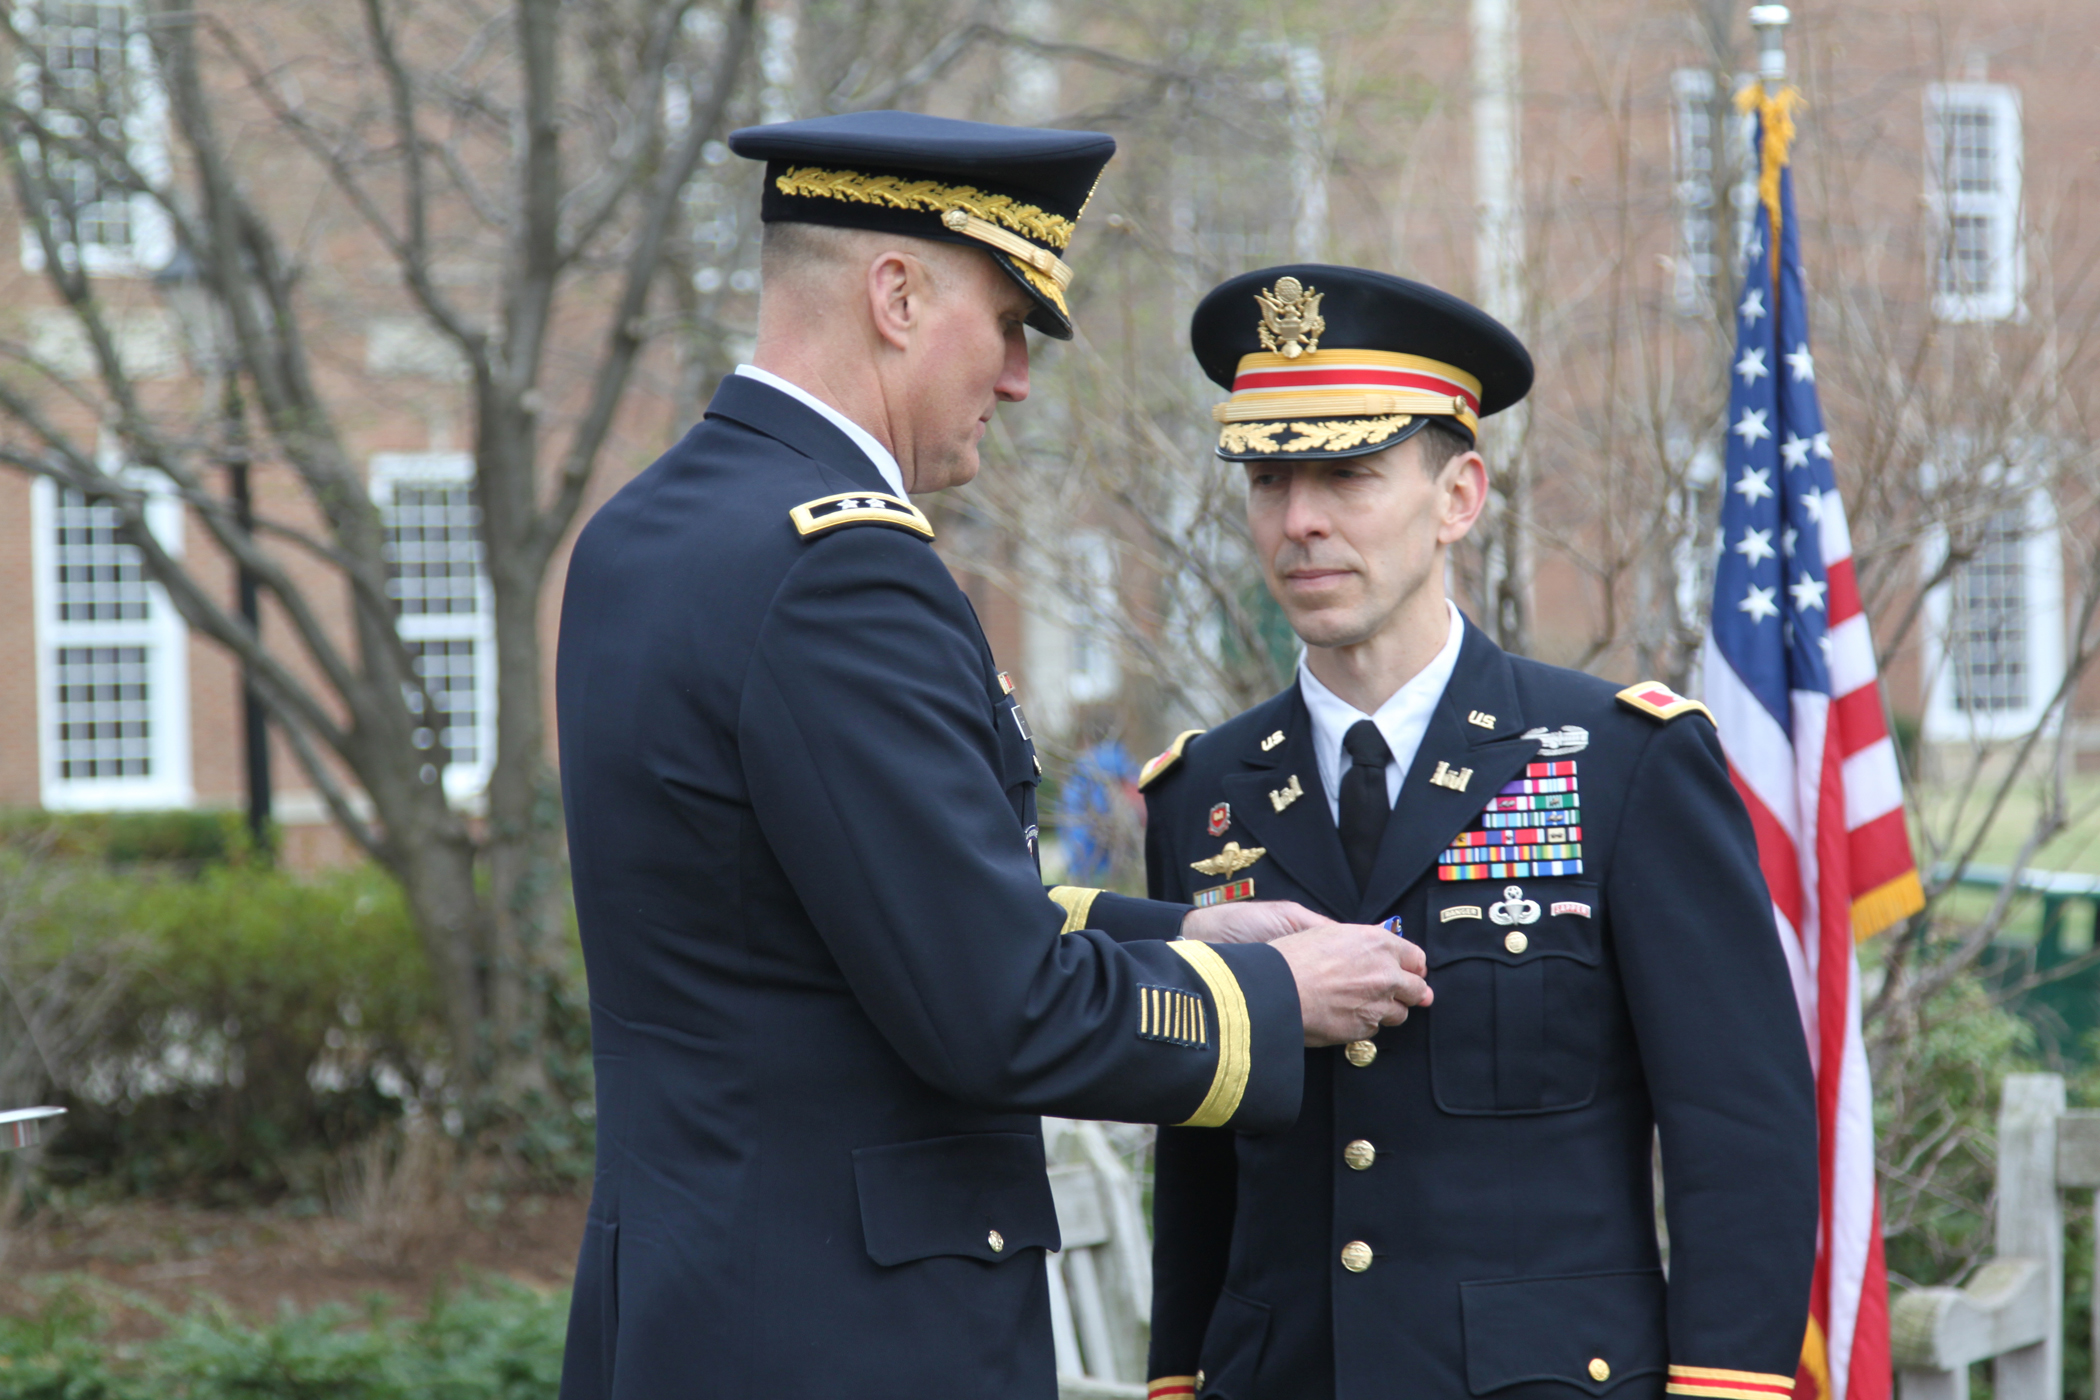 Boston Marathon Hero Awarded Soldier S Medal Headquarters Story